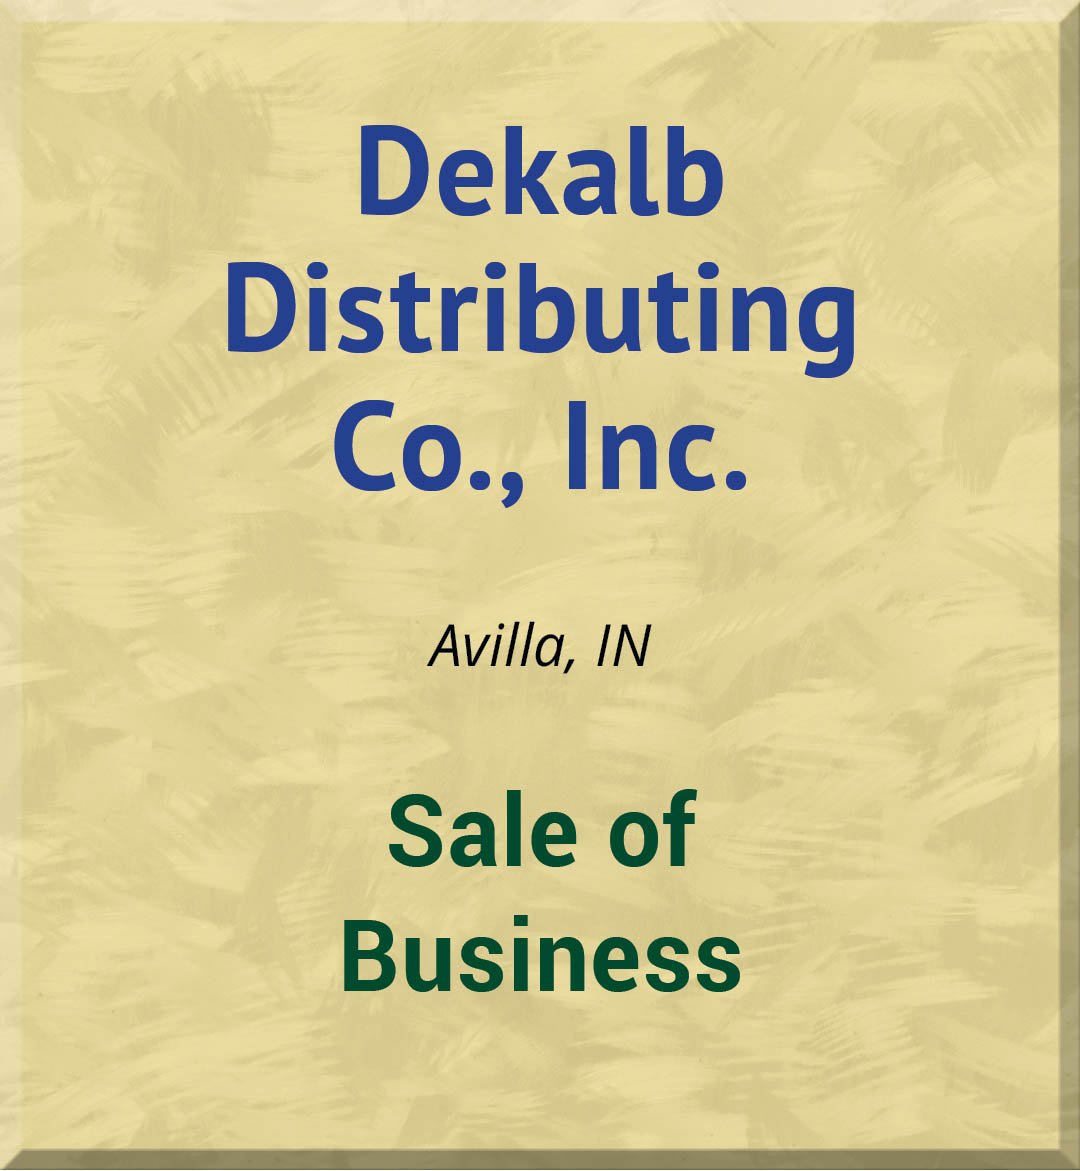 Dekalb Distributing Co., Inc.